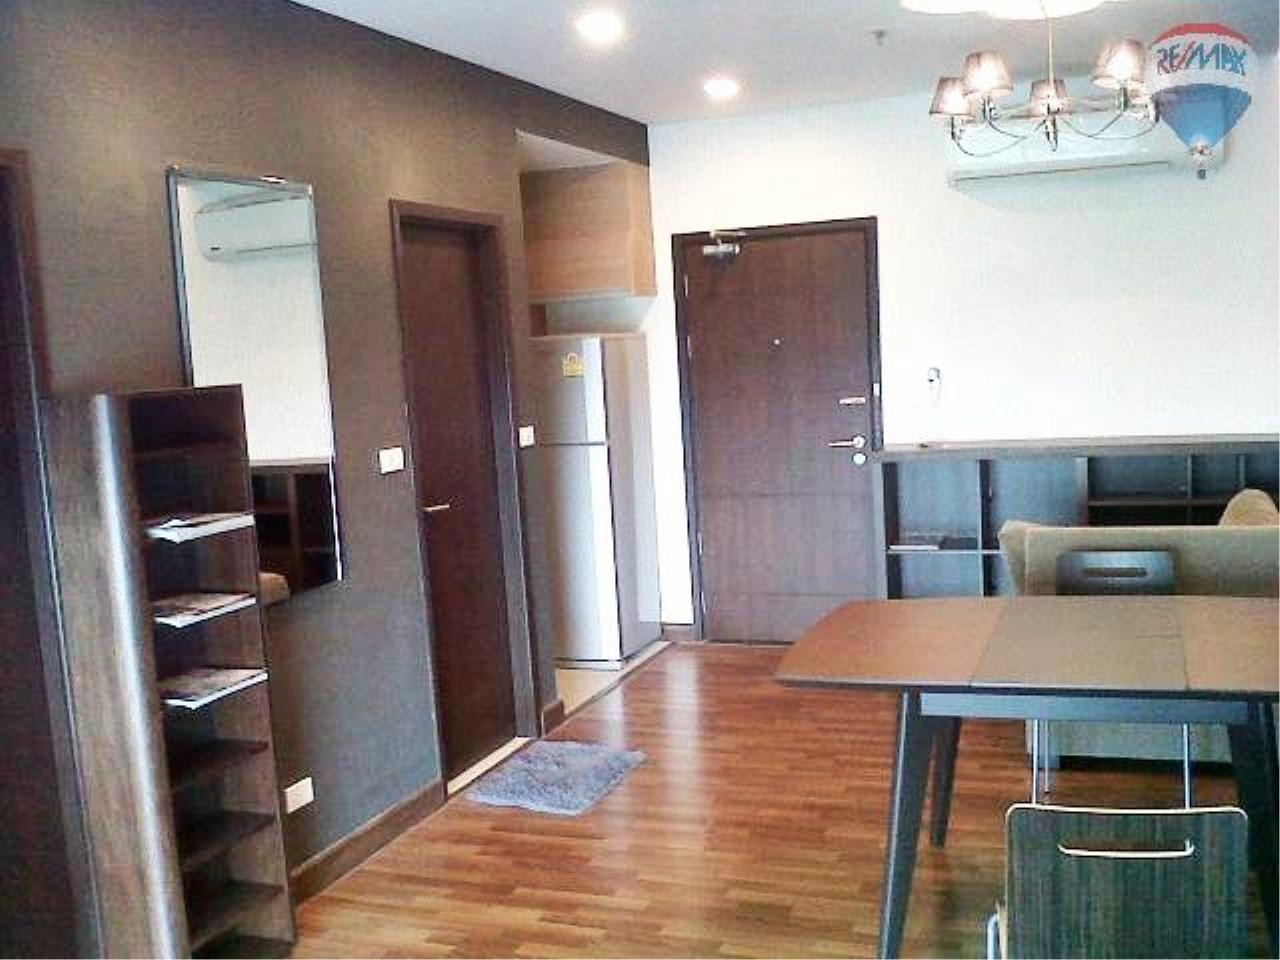 RE/MAX Properties Agency's Condominium for rent 1 bedroom 51 Sq.m. at Le Luk 6